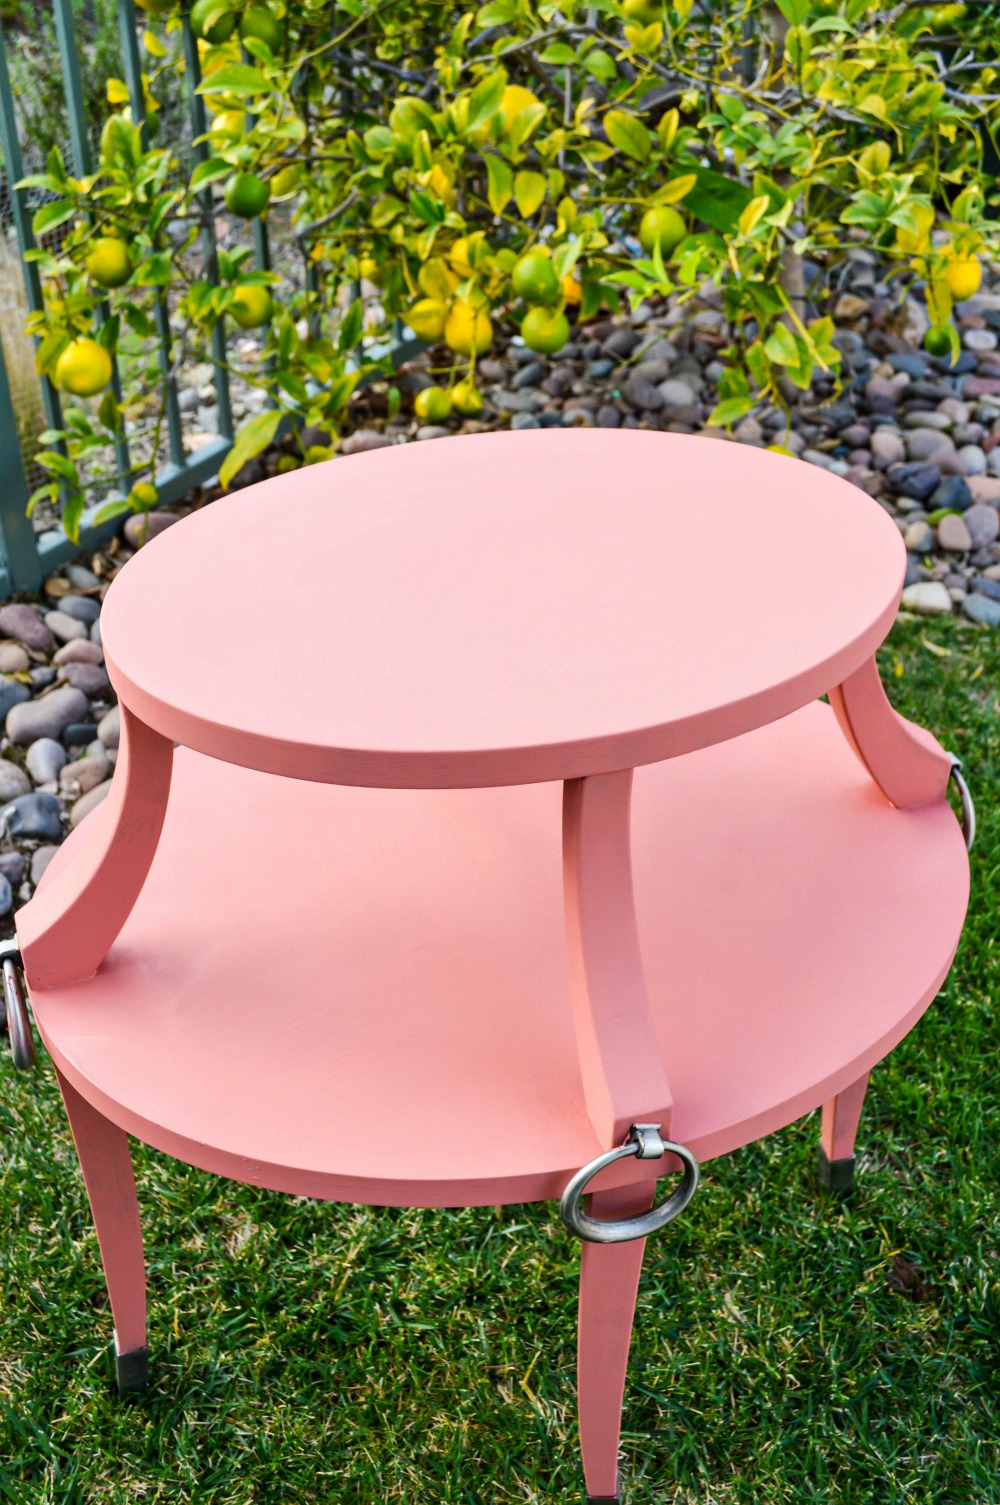 dont-get-rid-of-those-old-side-tables-paint-them